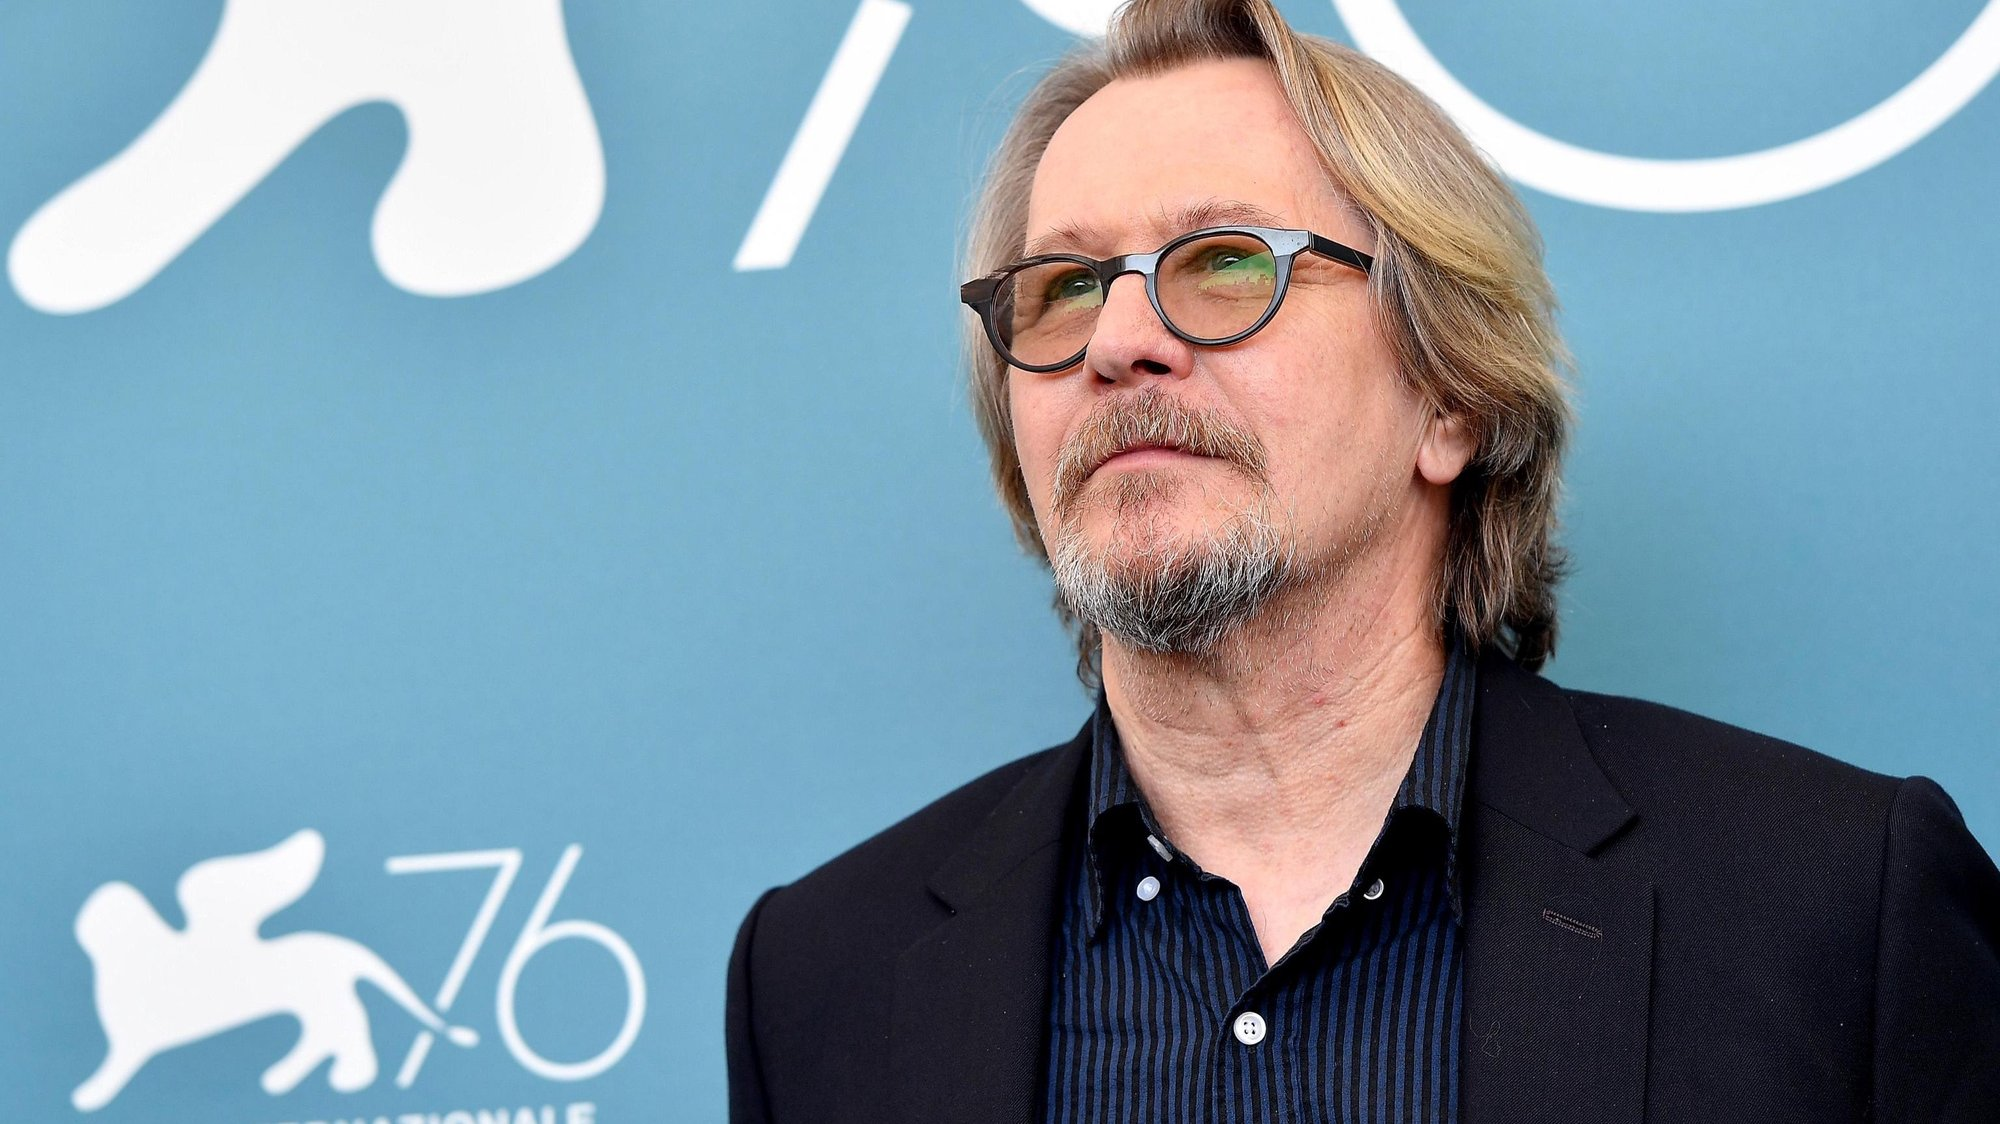 epa07809954 British actor Gary Oldman poses at a photocall for 'The Laundromat' during the 76th annual Venice International Film Festival, in Venice, Italy, 01 September 2019. The movie is presented in official competition 'Venezia 76' at the festival running from 28 August to 07 September.  EPA/ETTORE FERRARI